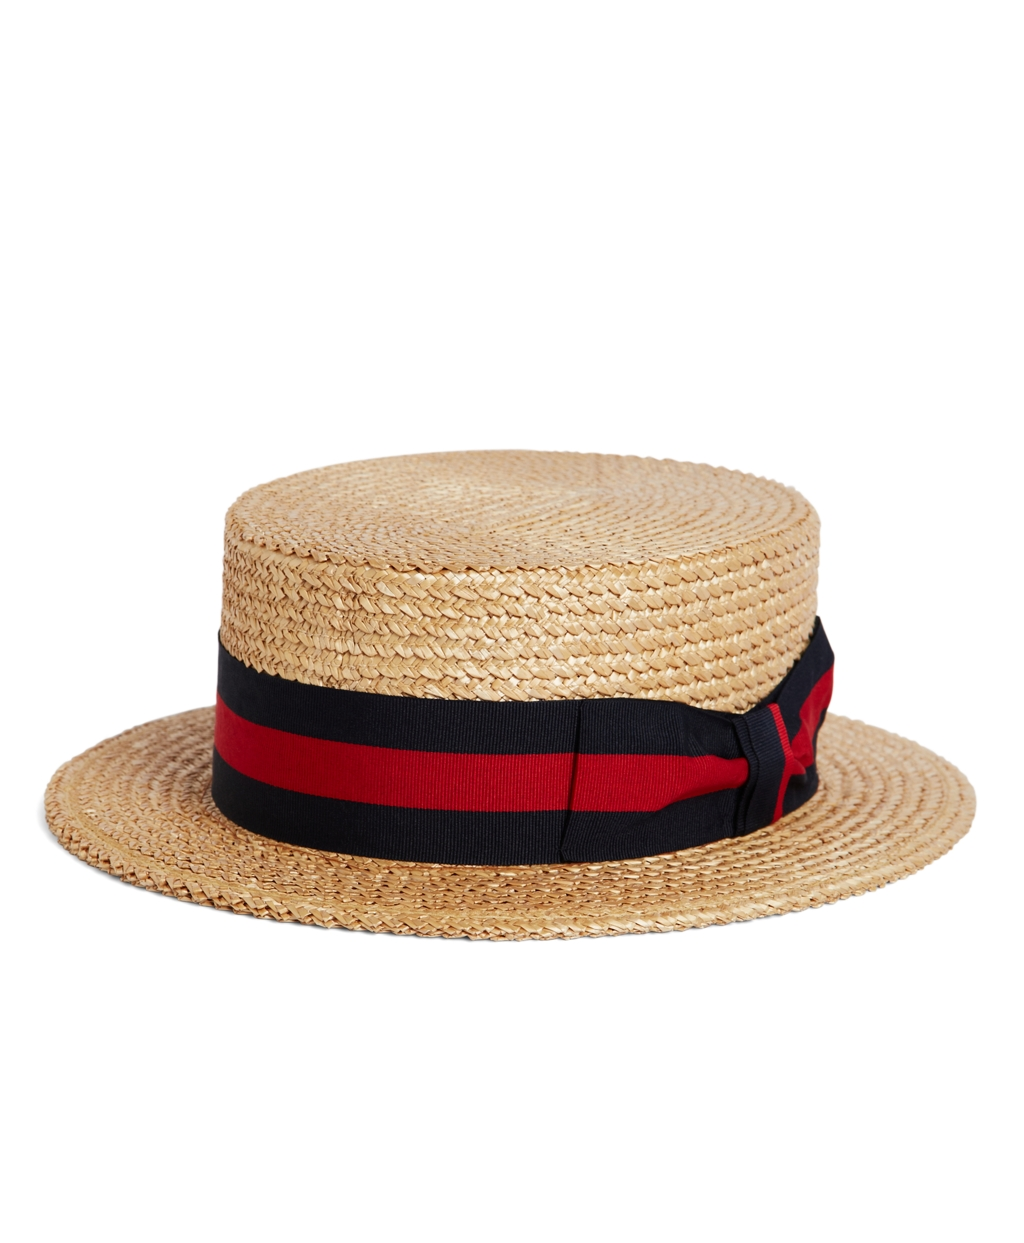 1920s Mens Hats & Caps   Gatsby, Peaky Blinders, Gangster Brooks Brothers Mens The Great Gatsby Collection Straw Boater Hat With Red And Navy Striped Ribbon $198.00 AT vintagedancer.com